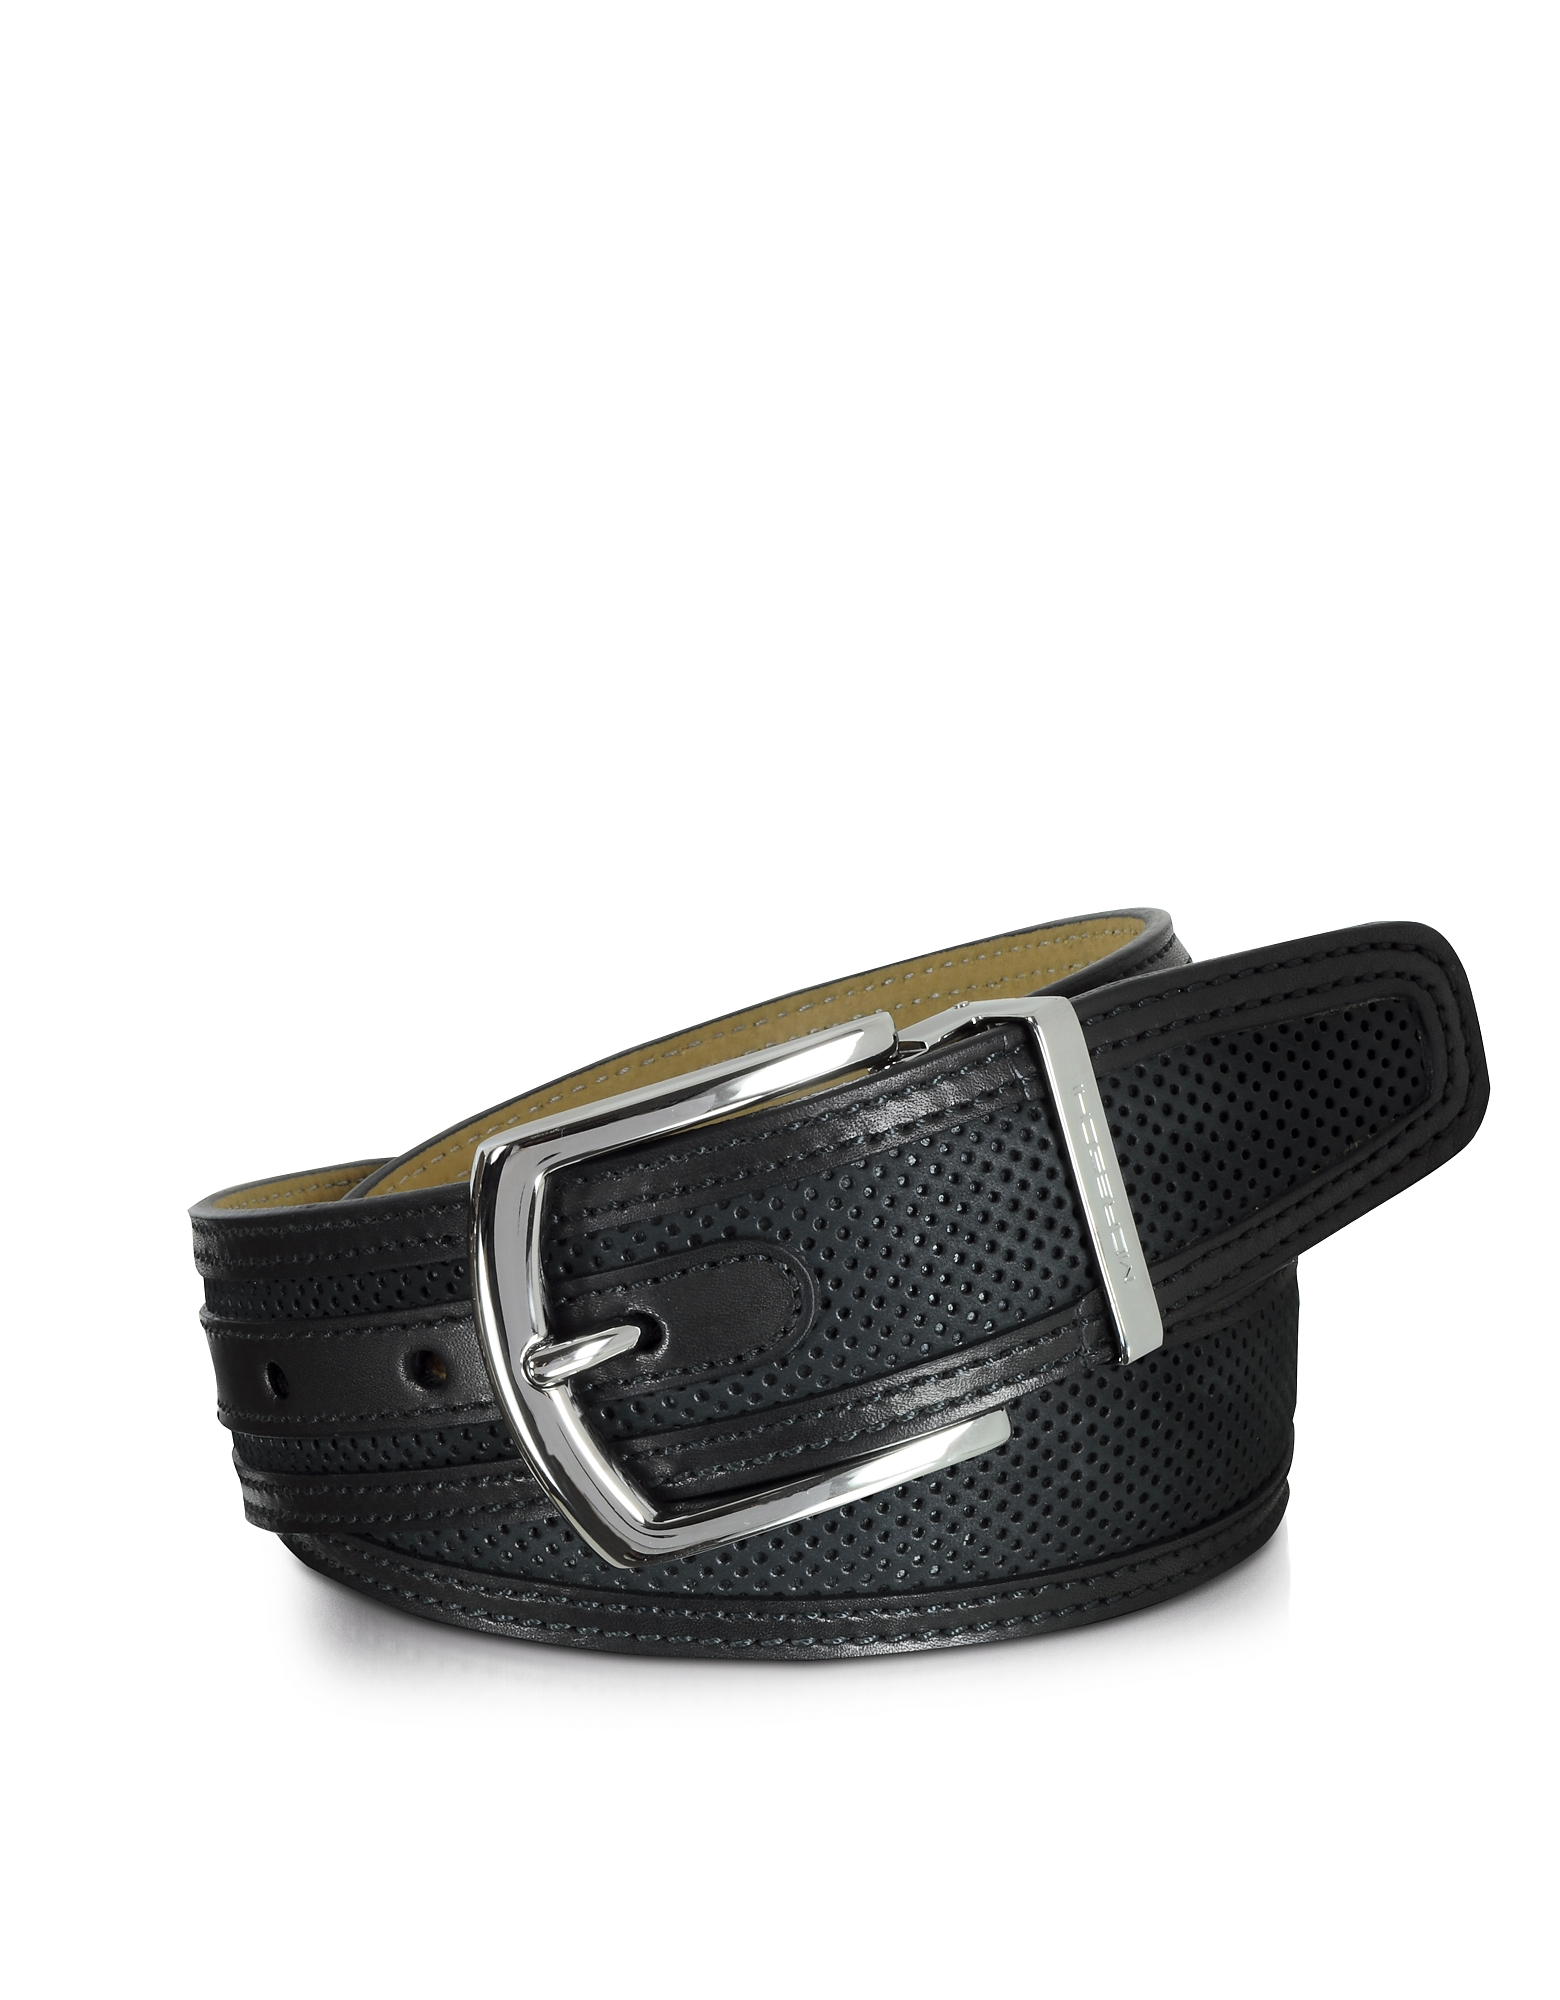 Moreschi Men's Belts, St. Barth Black Perforated Nubuck and Leather Belt